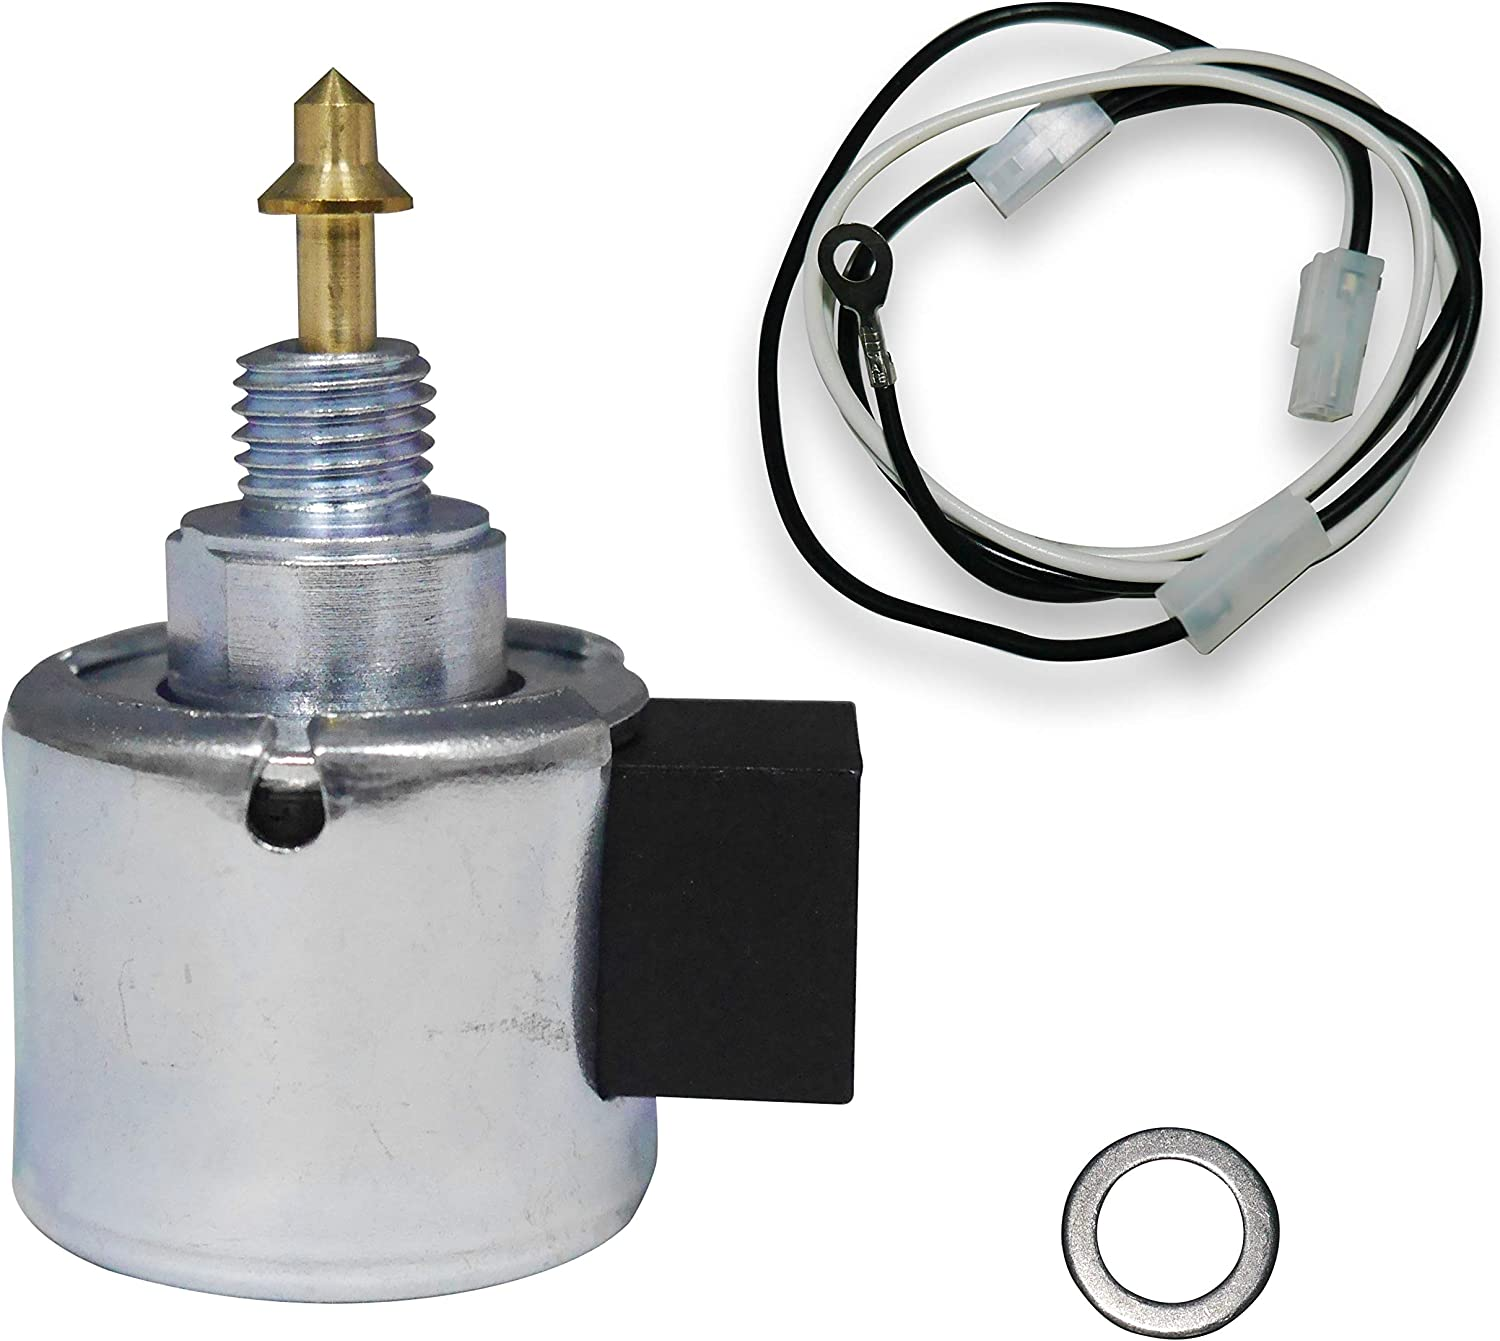 Fuel Shut-Off Solenoid 846639 for Briggs Stratton Fits Lawn and Garden Equipment Engines FS-33R877-A1